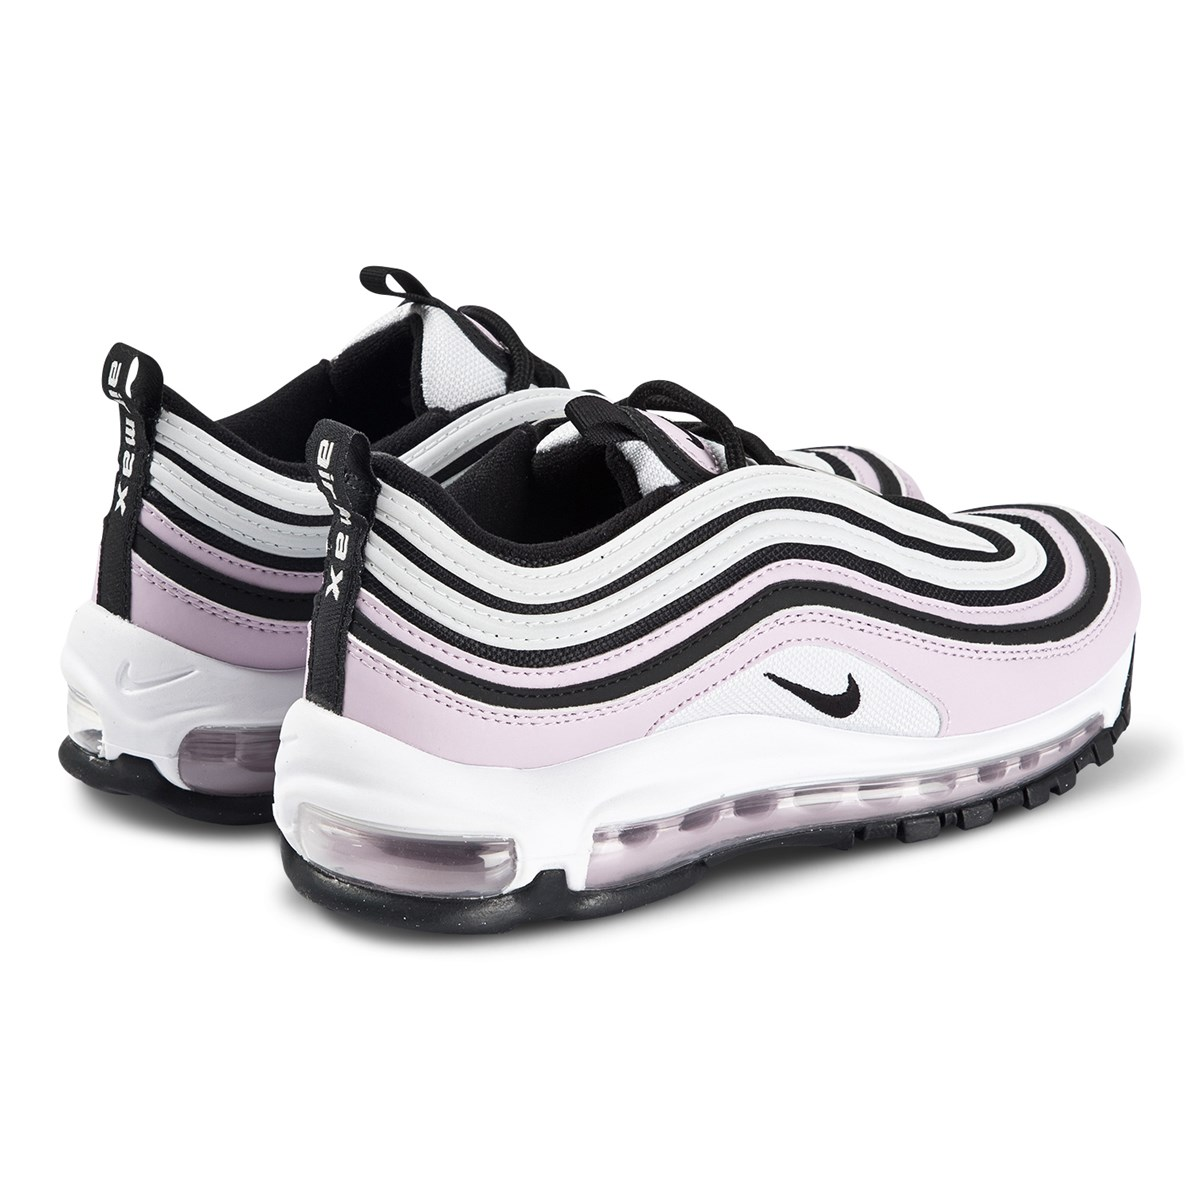 This Nike Air Max 97 Is for the Lilac Lovers | Nike air max